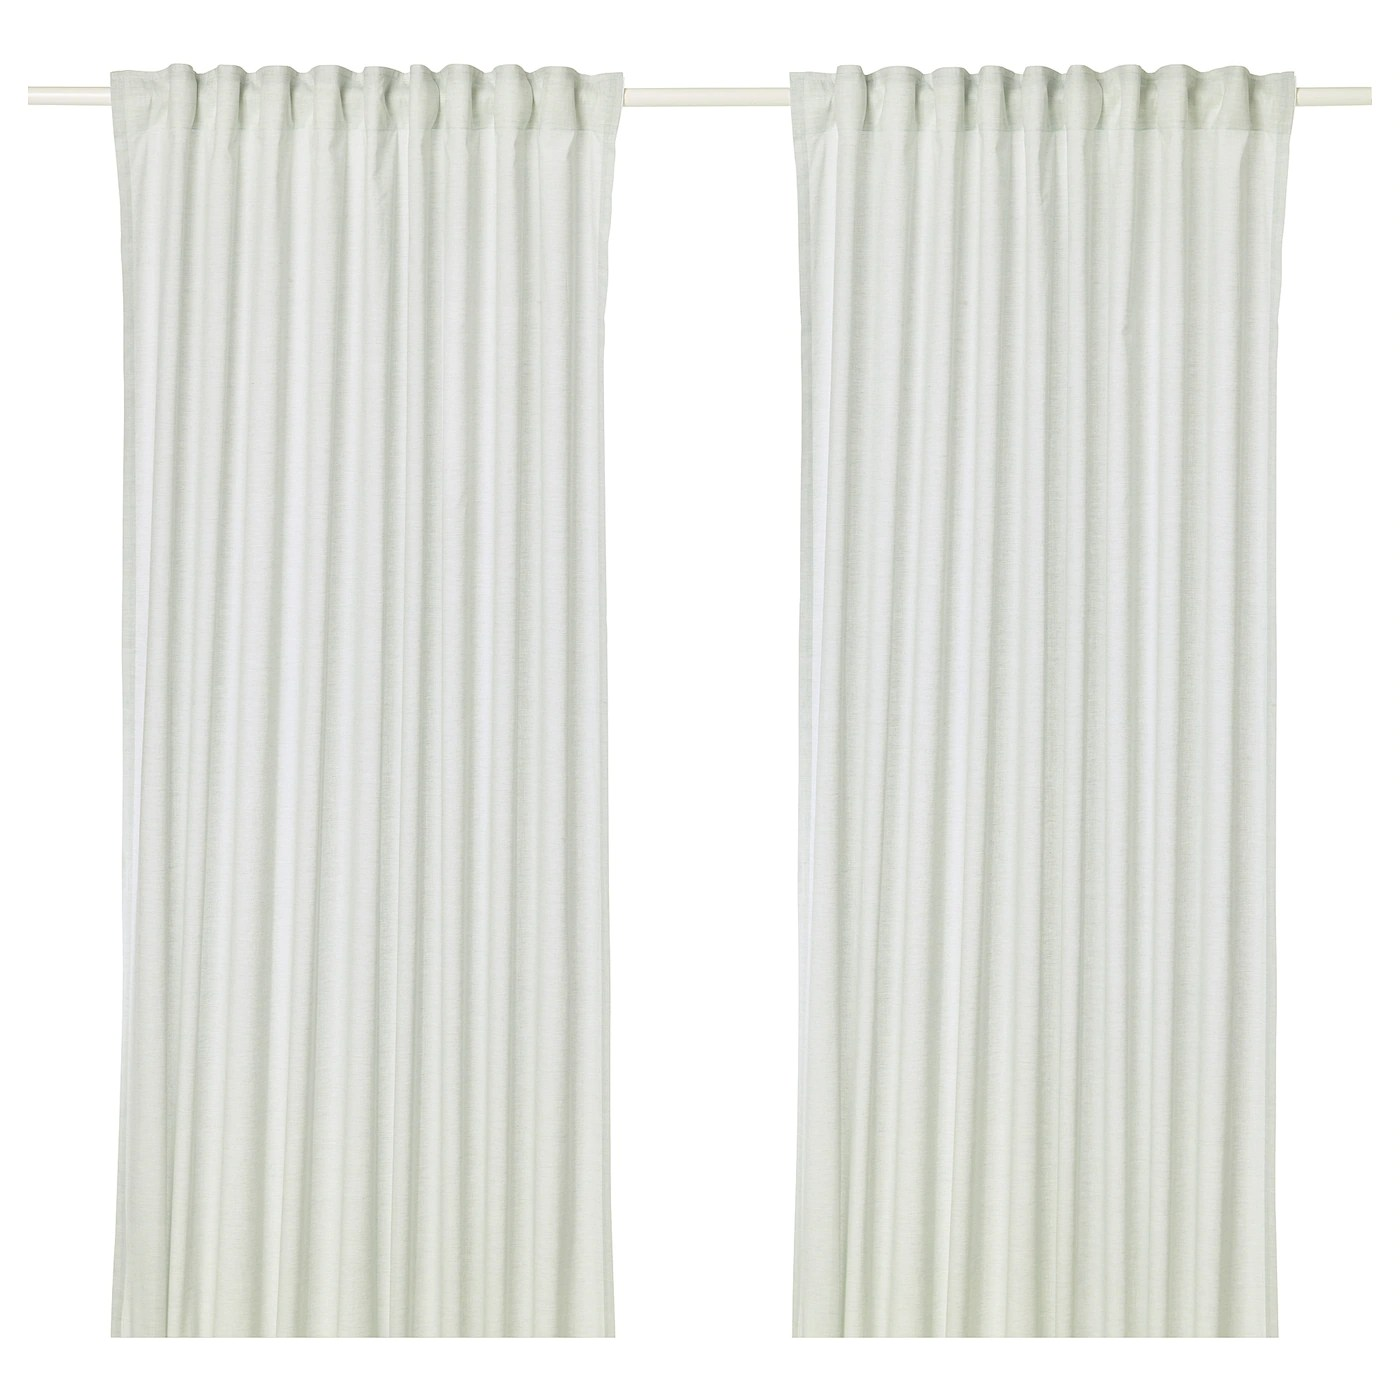 Ready Made Curtains 108 Drop Curtains Ready Made Curtains Ikea